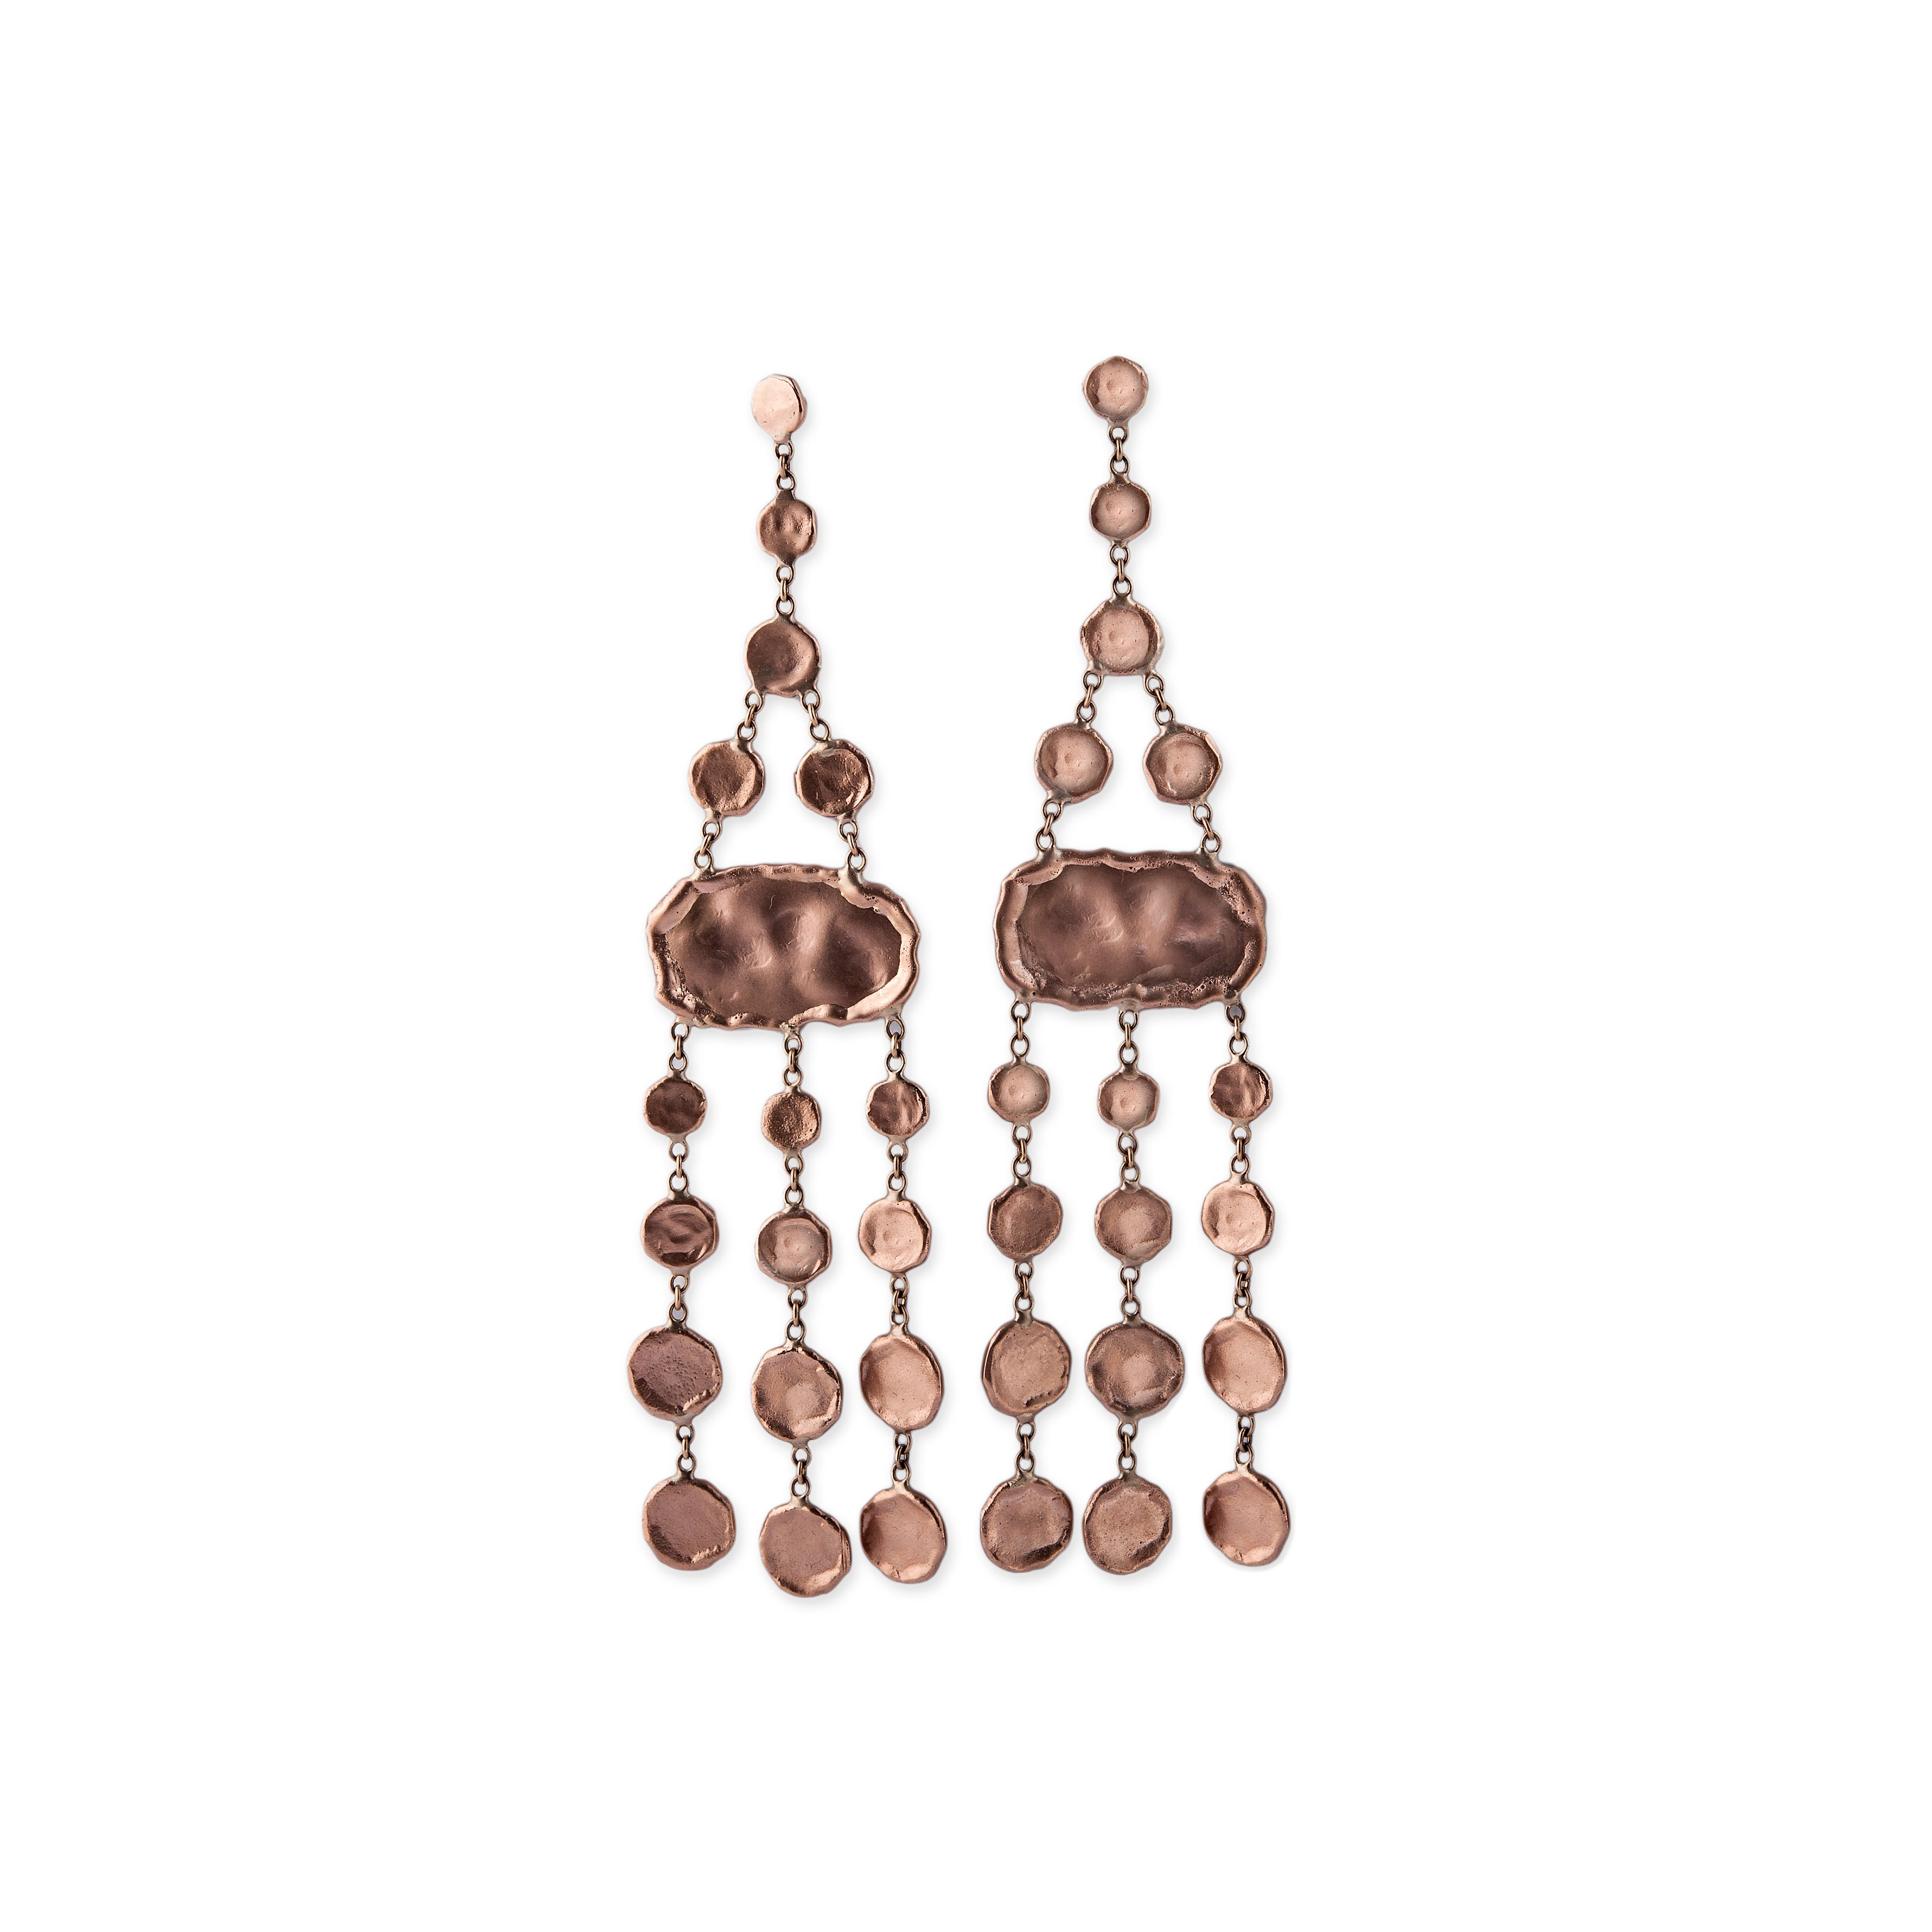 Image of Hammered Disc Chandelier Earrings